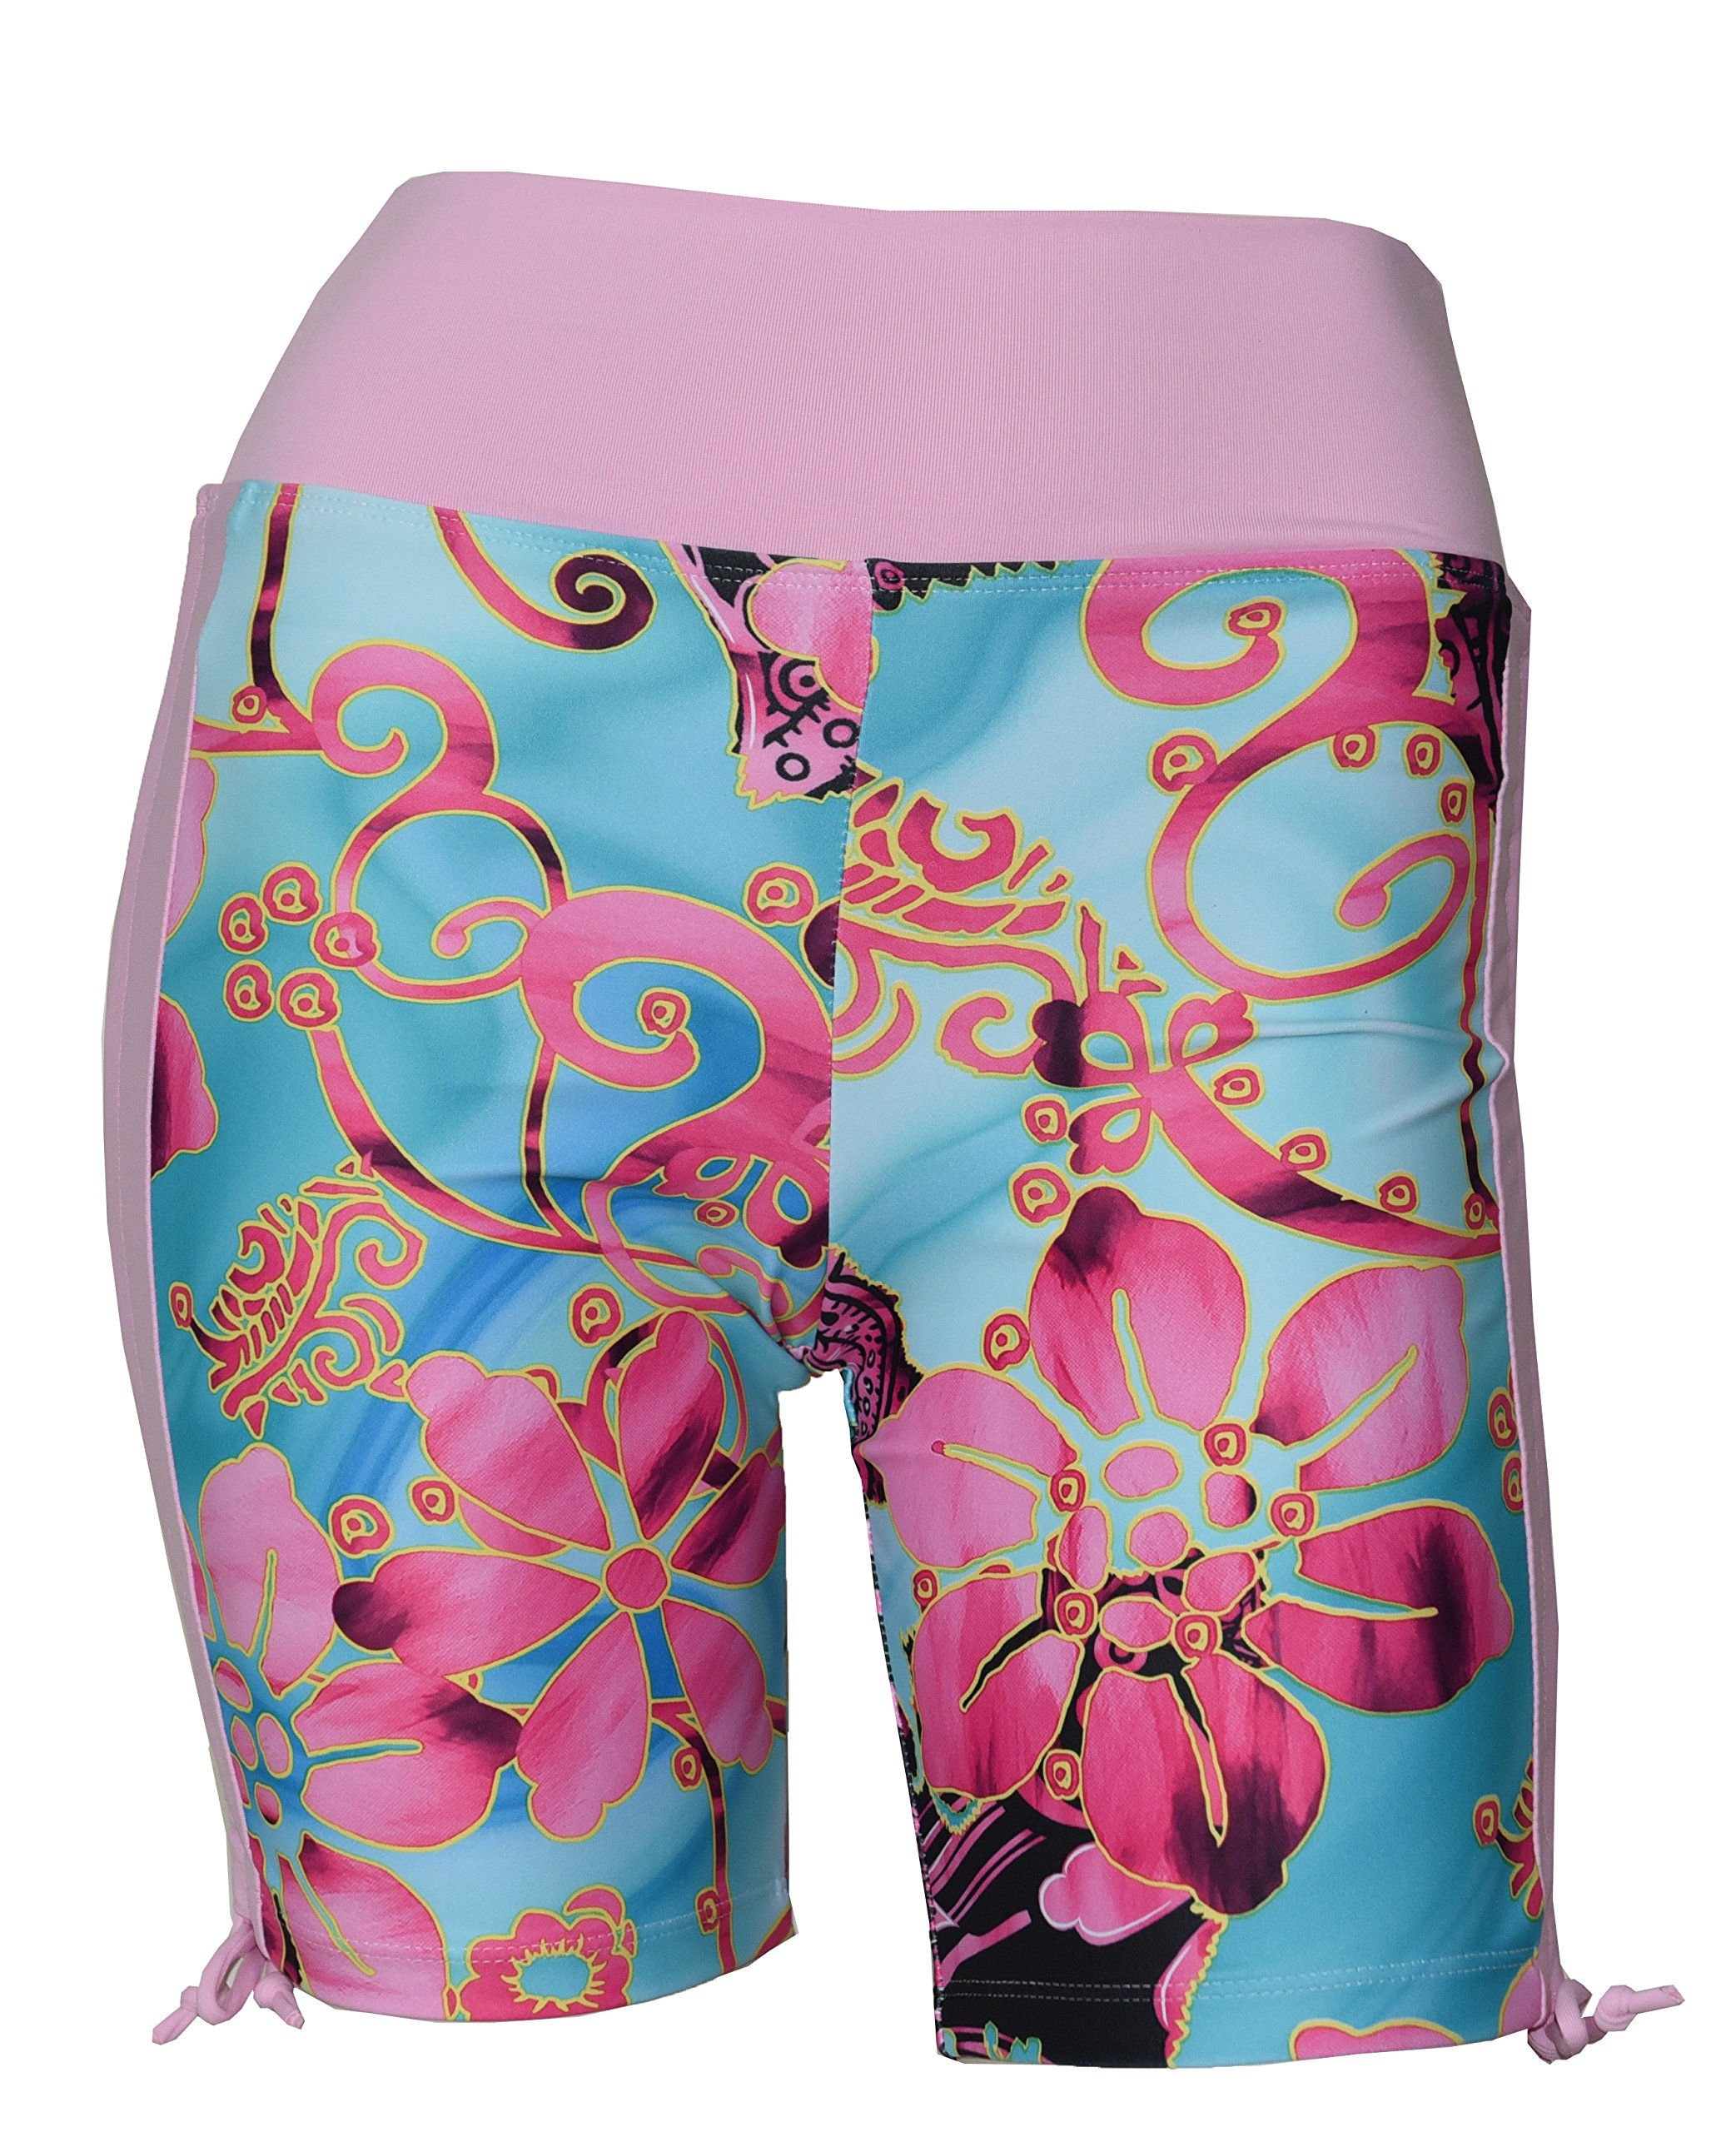 Private Island Women UV Swim Rash Guard Board Shorts Pants Yoga (L, PwSBP) by Private Island